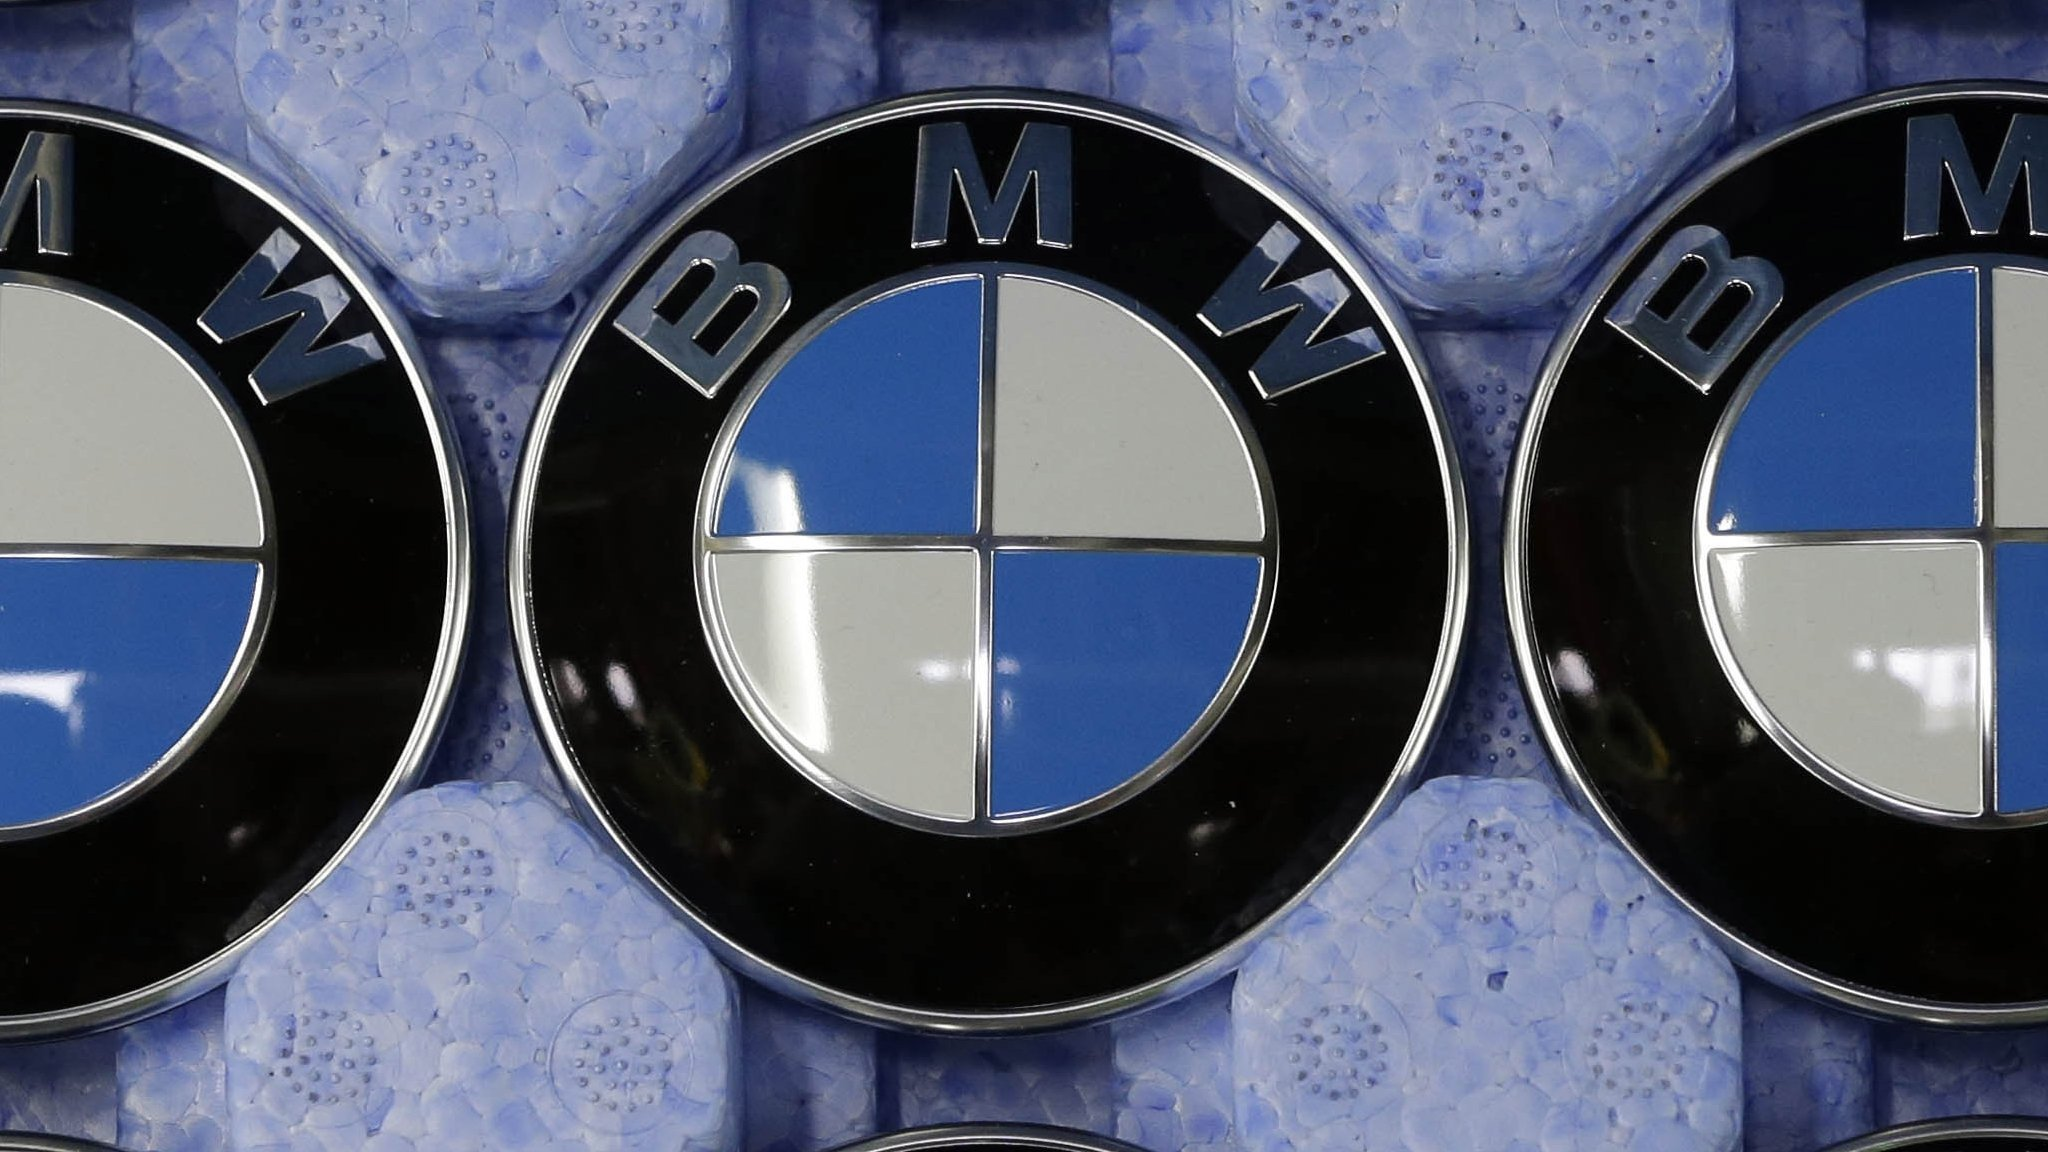 BMW car production disrupted due to supply problems